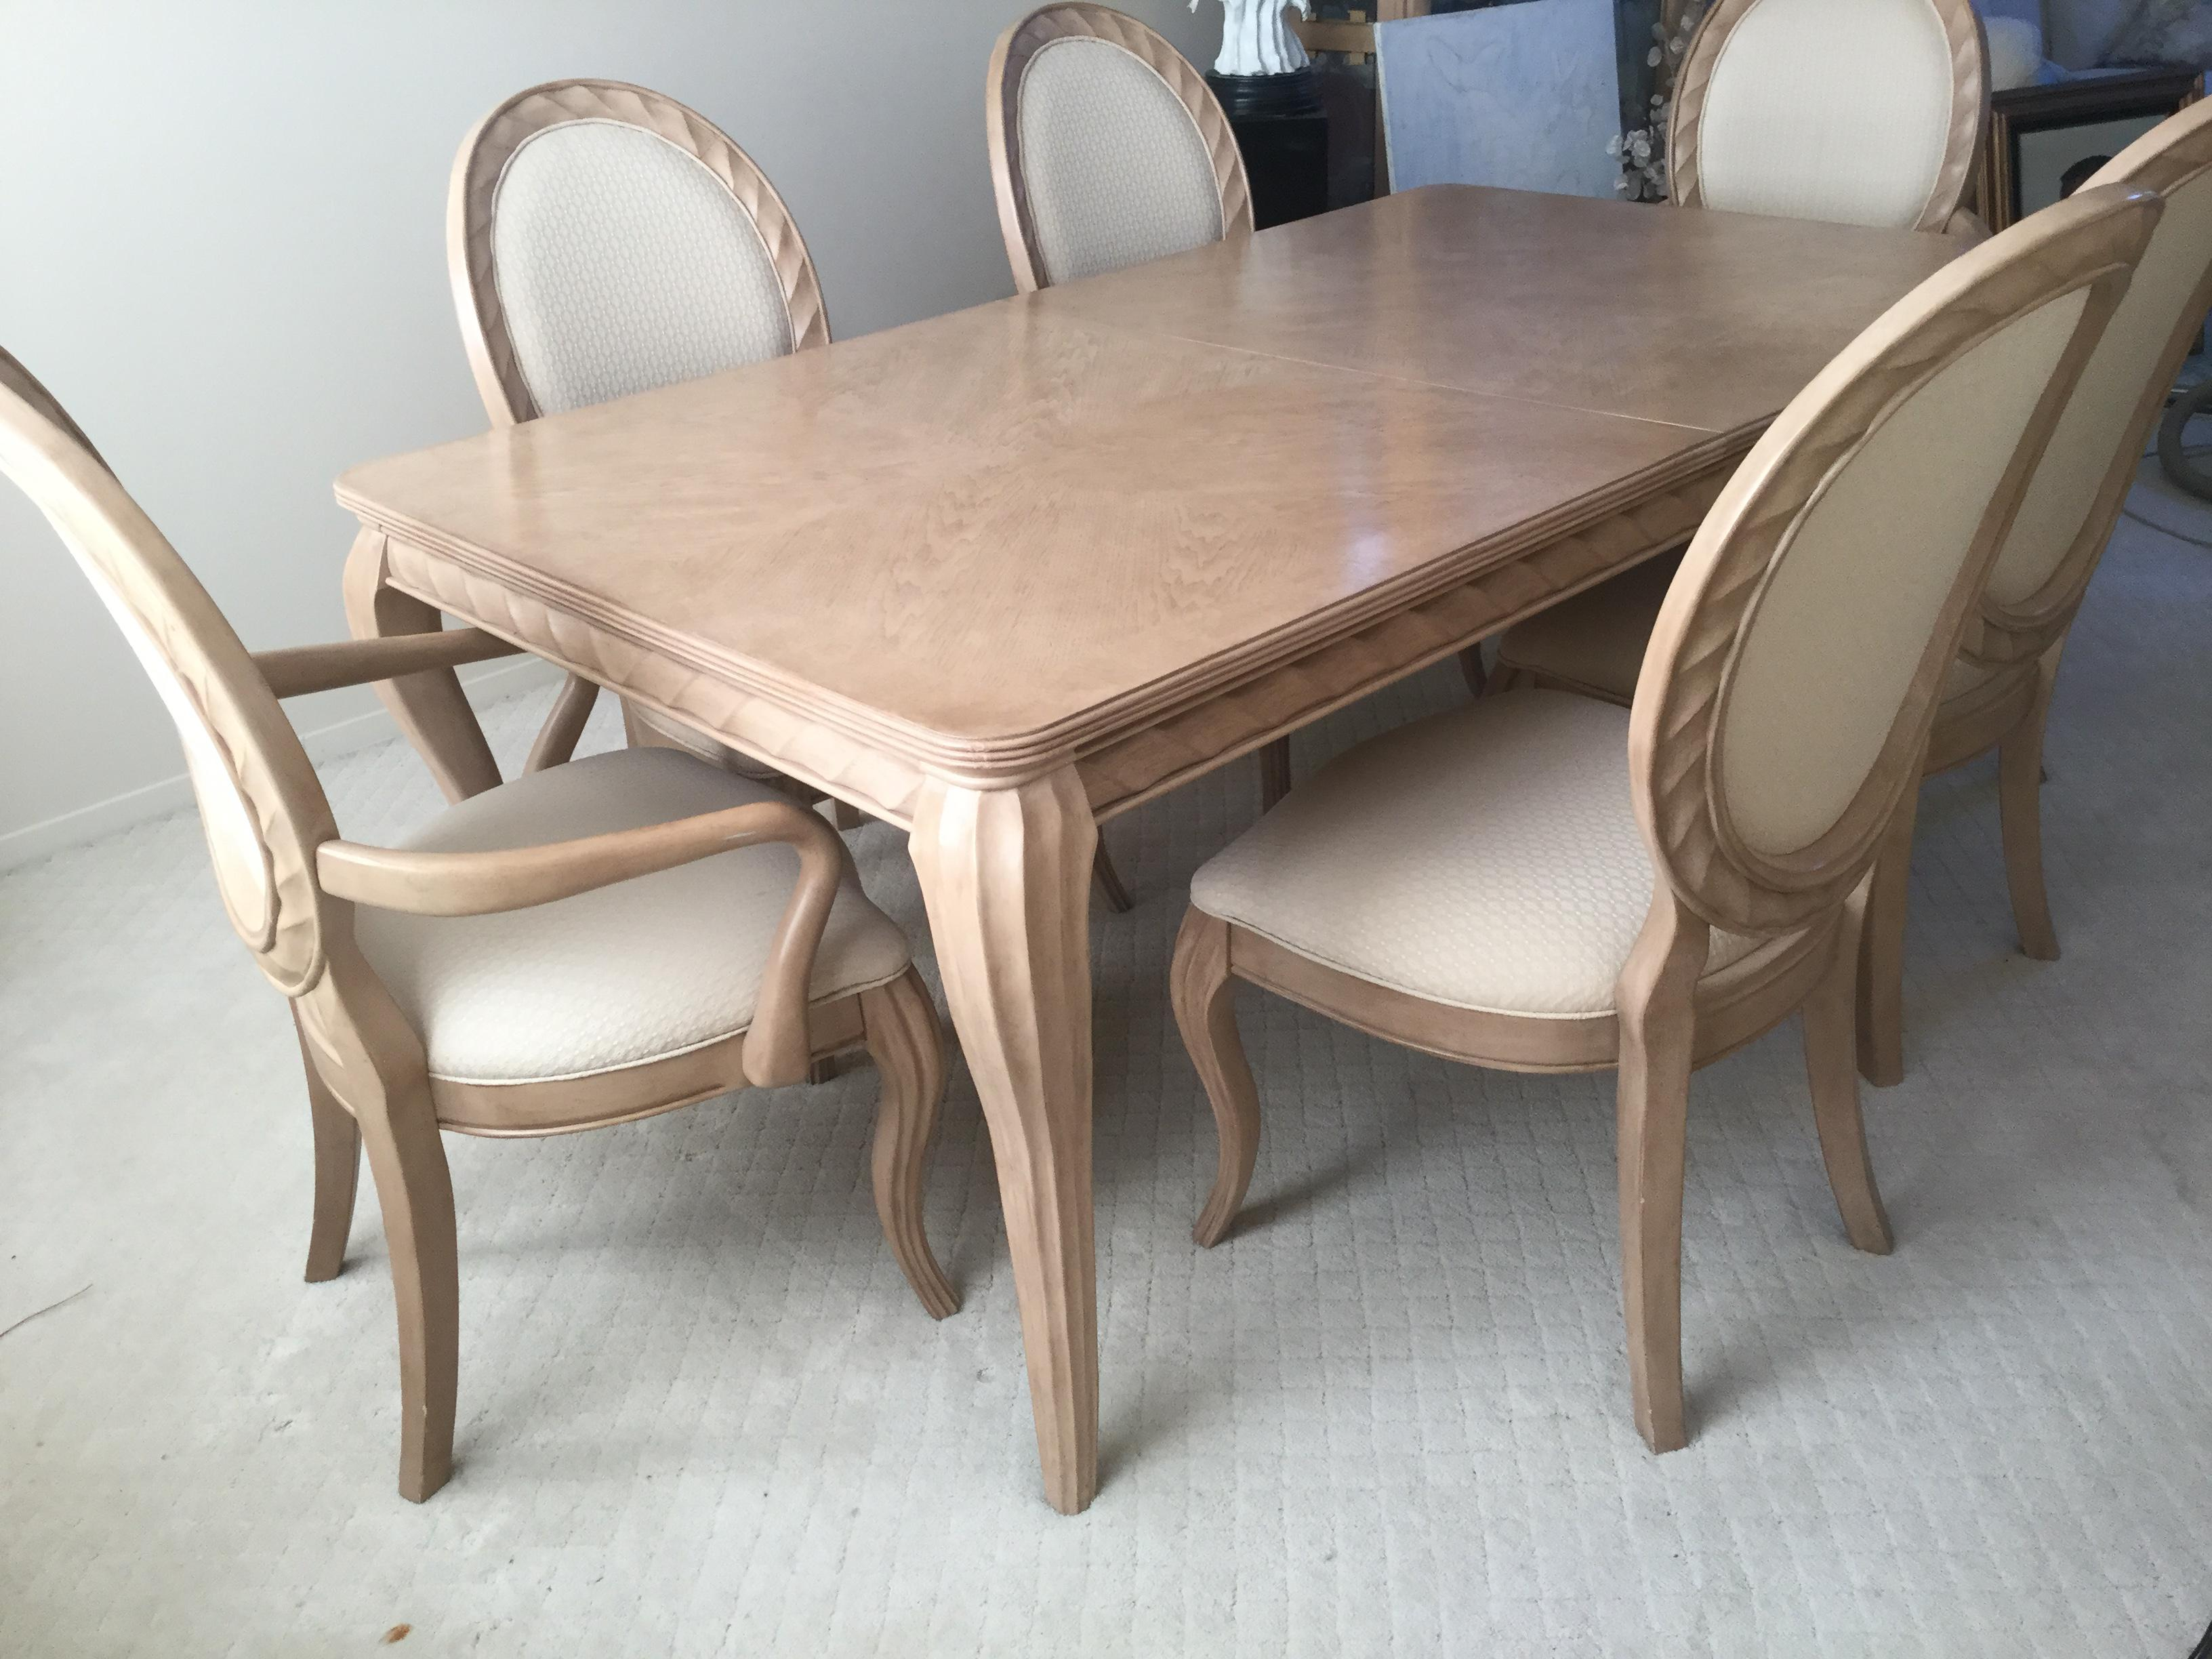 Bernhardt Tuscan Traditional Mediterranean Dining Room Set   Table 6 Chairs    Image 3 Of 10